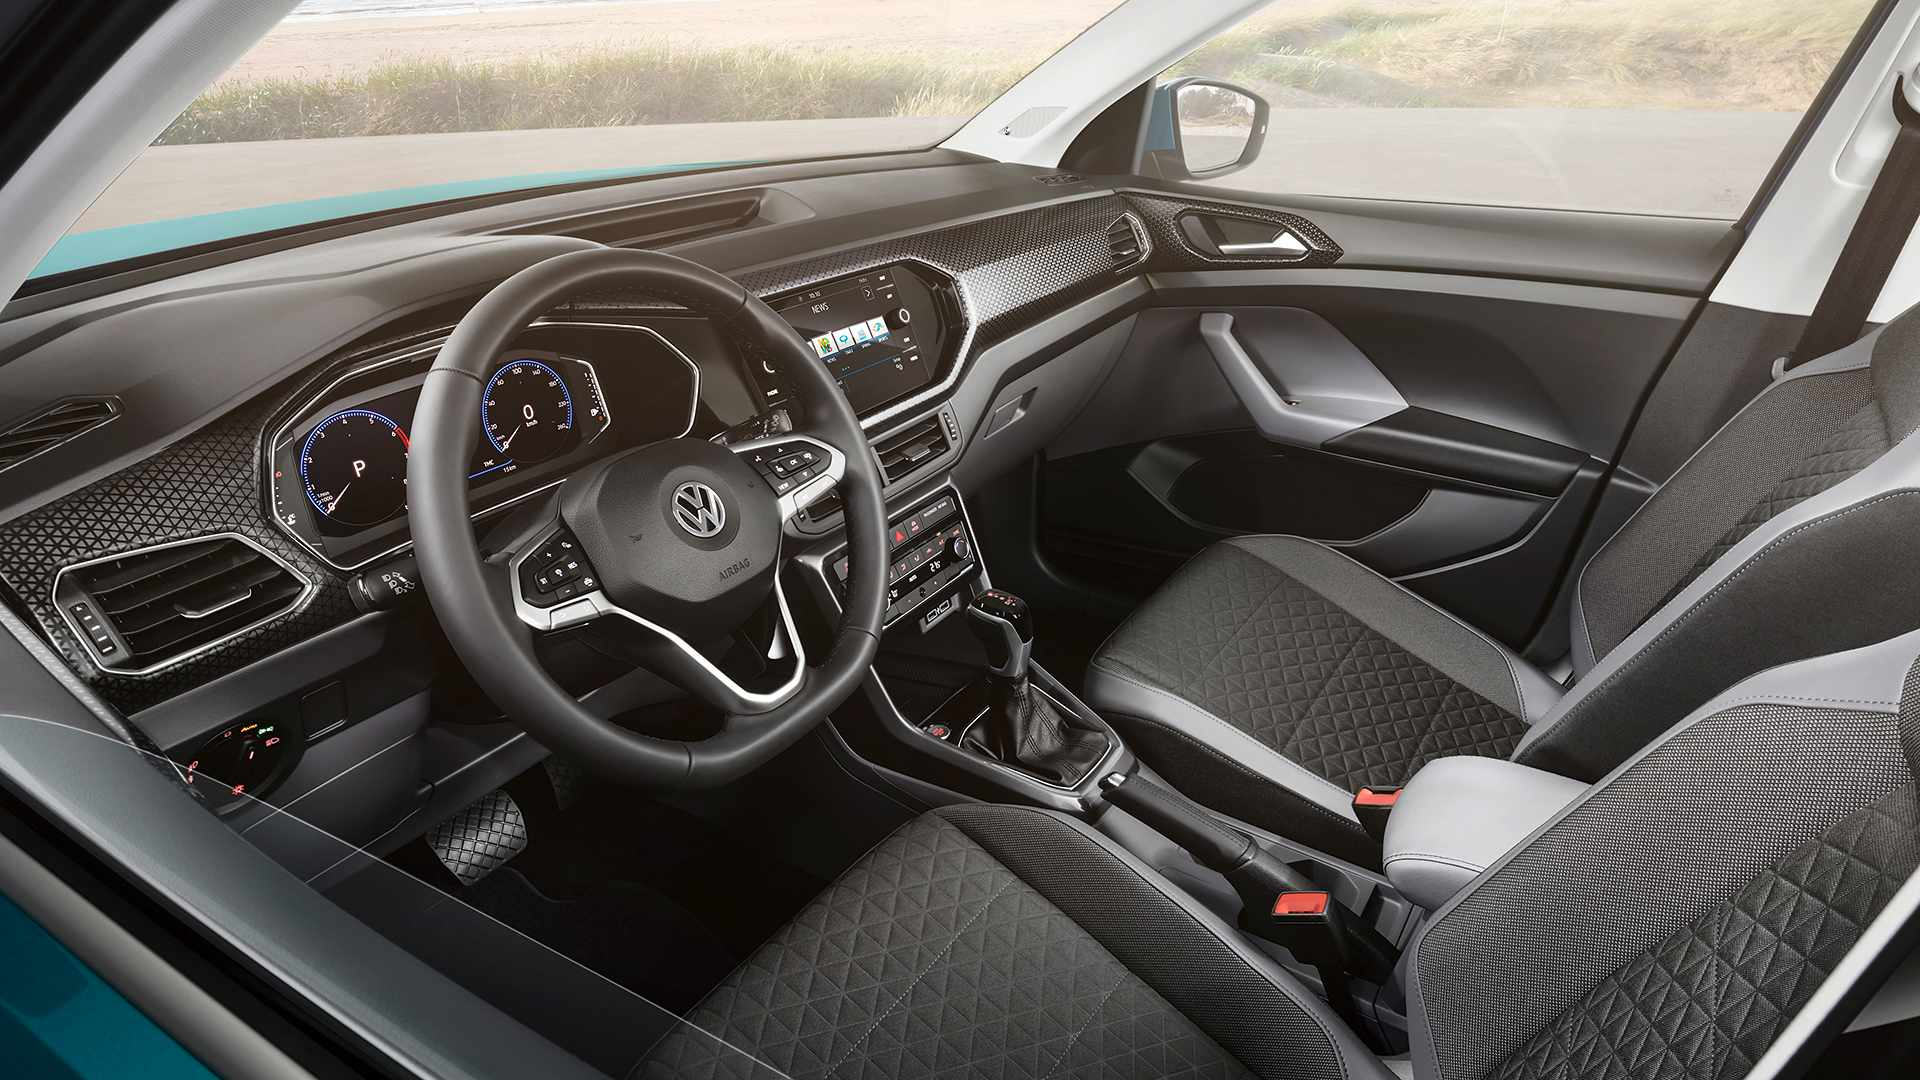 Volkswagen Adds 1 6 TDI Engine To T-Cross Small Crossover